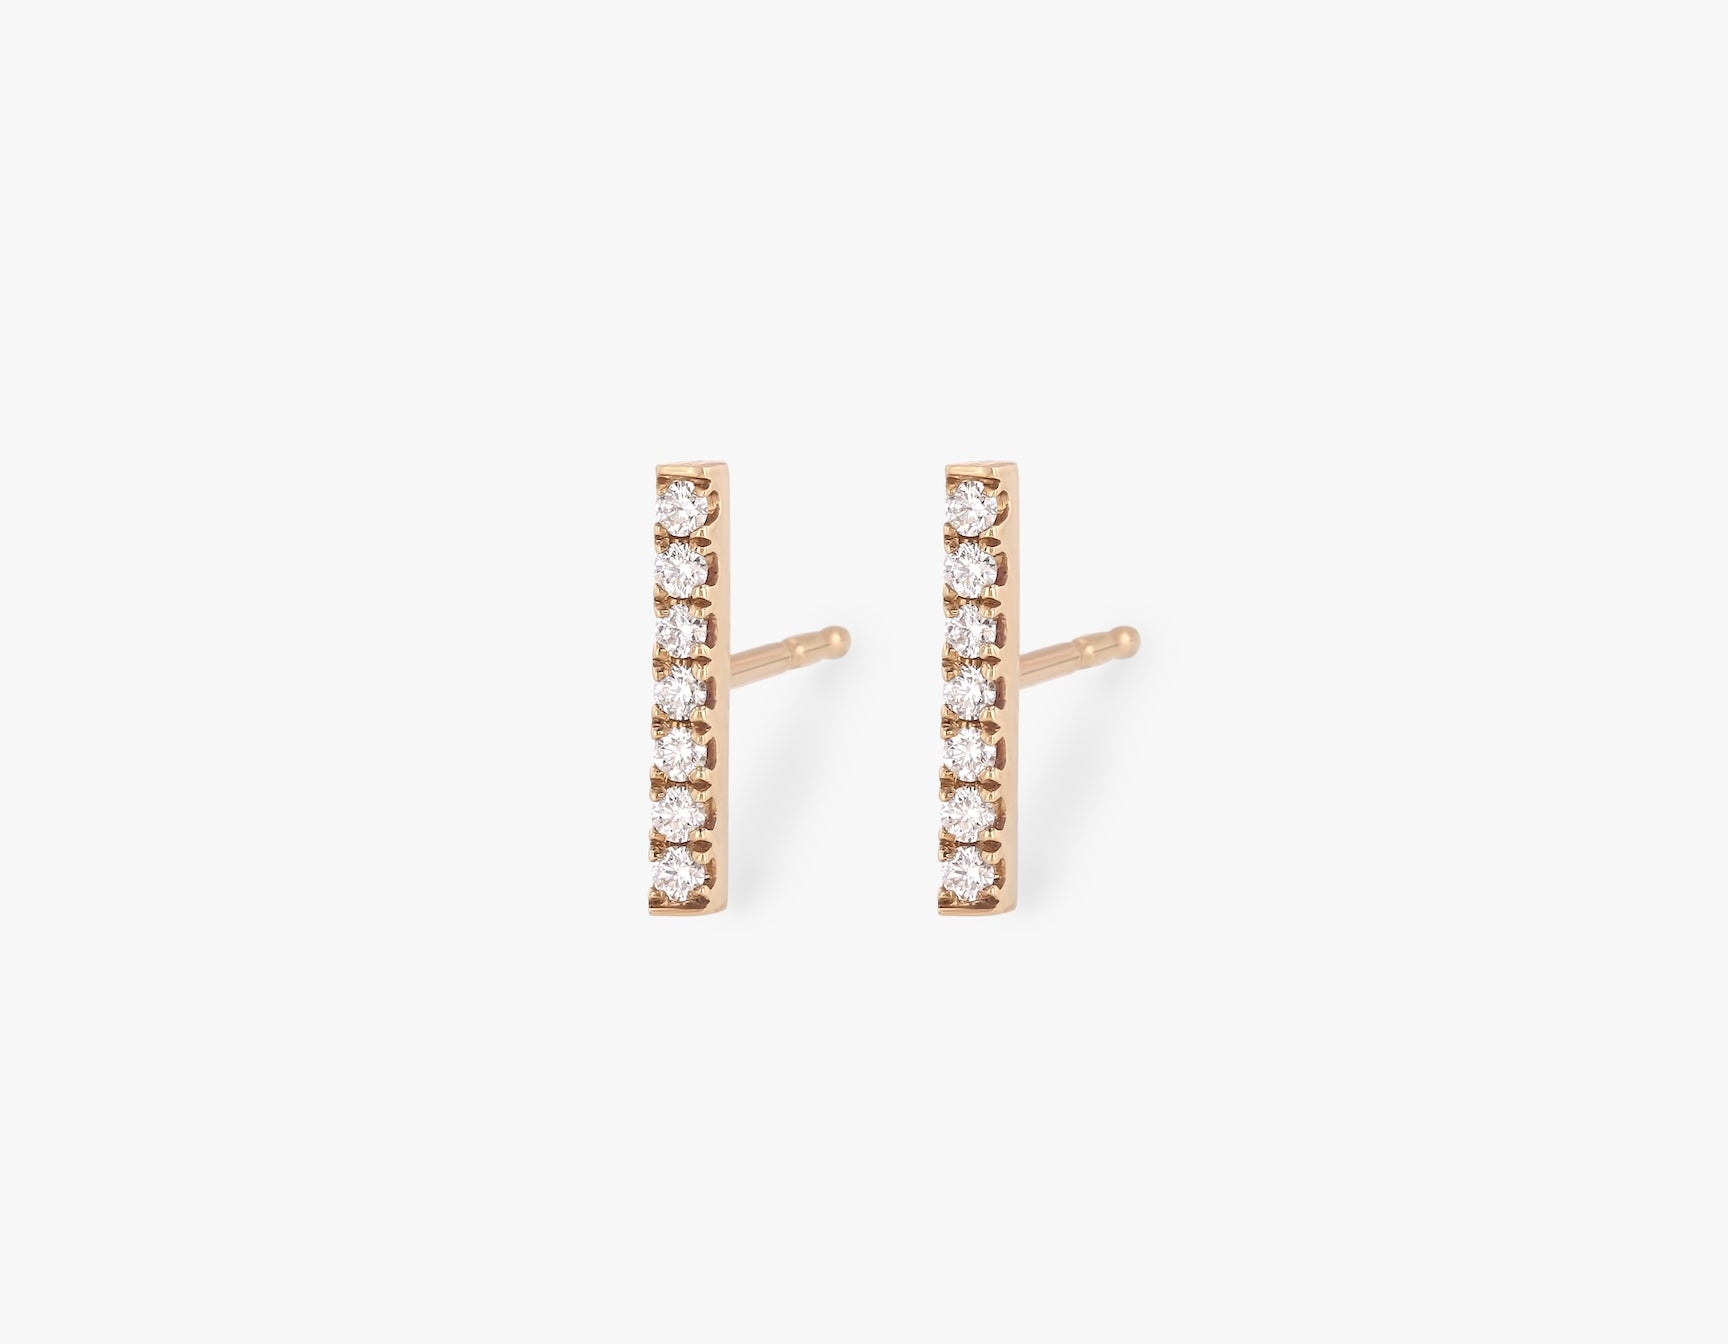 Vrai solid gold Pave Line Stud, 14K Rose Gold